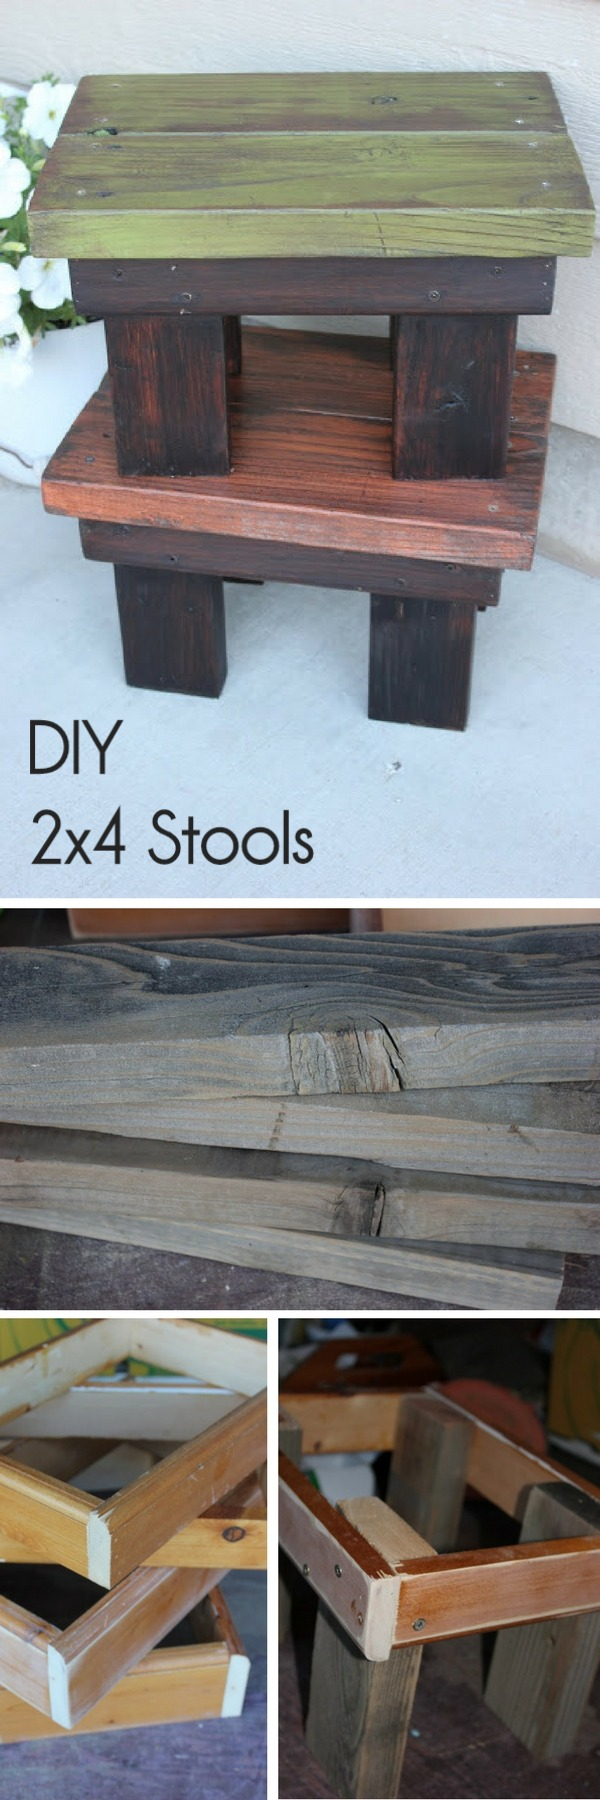 How to make #DIY wooden stools from 2x4s